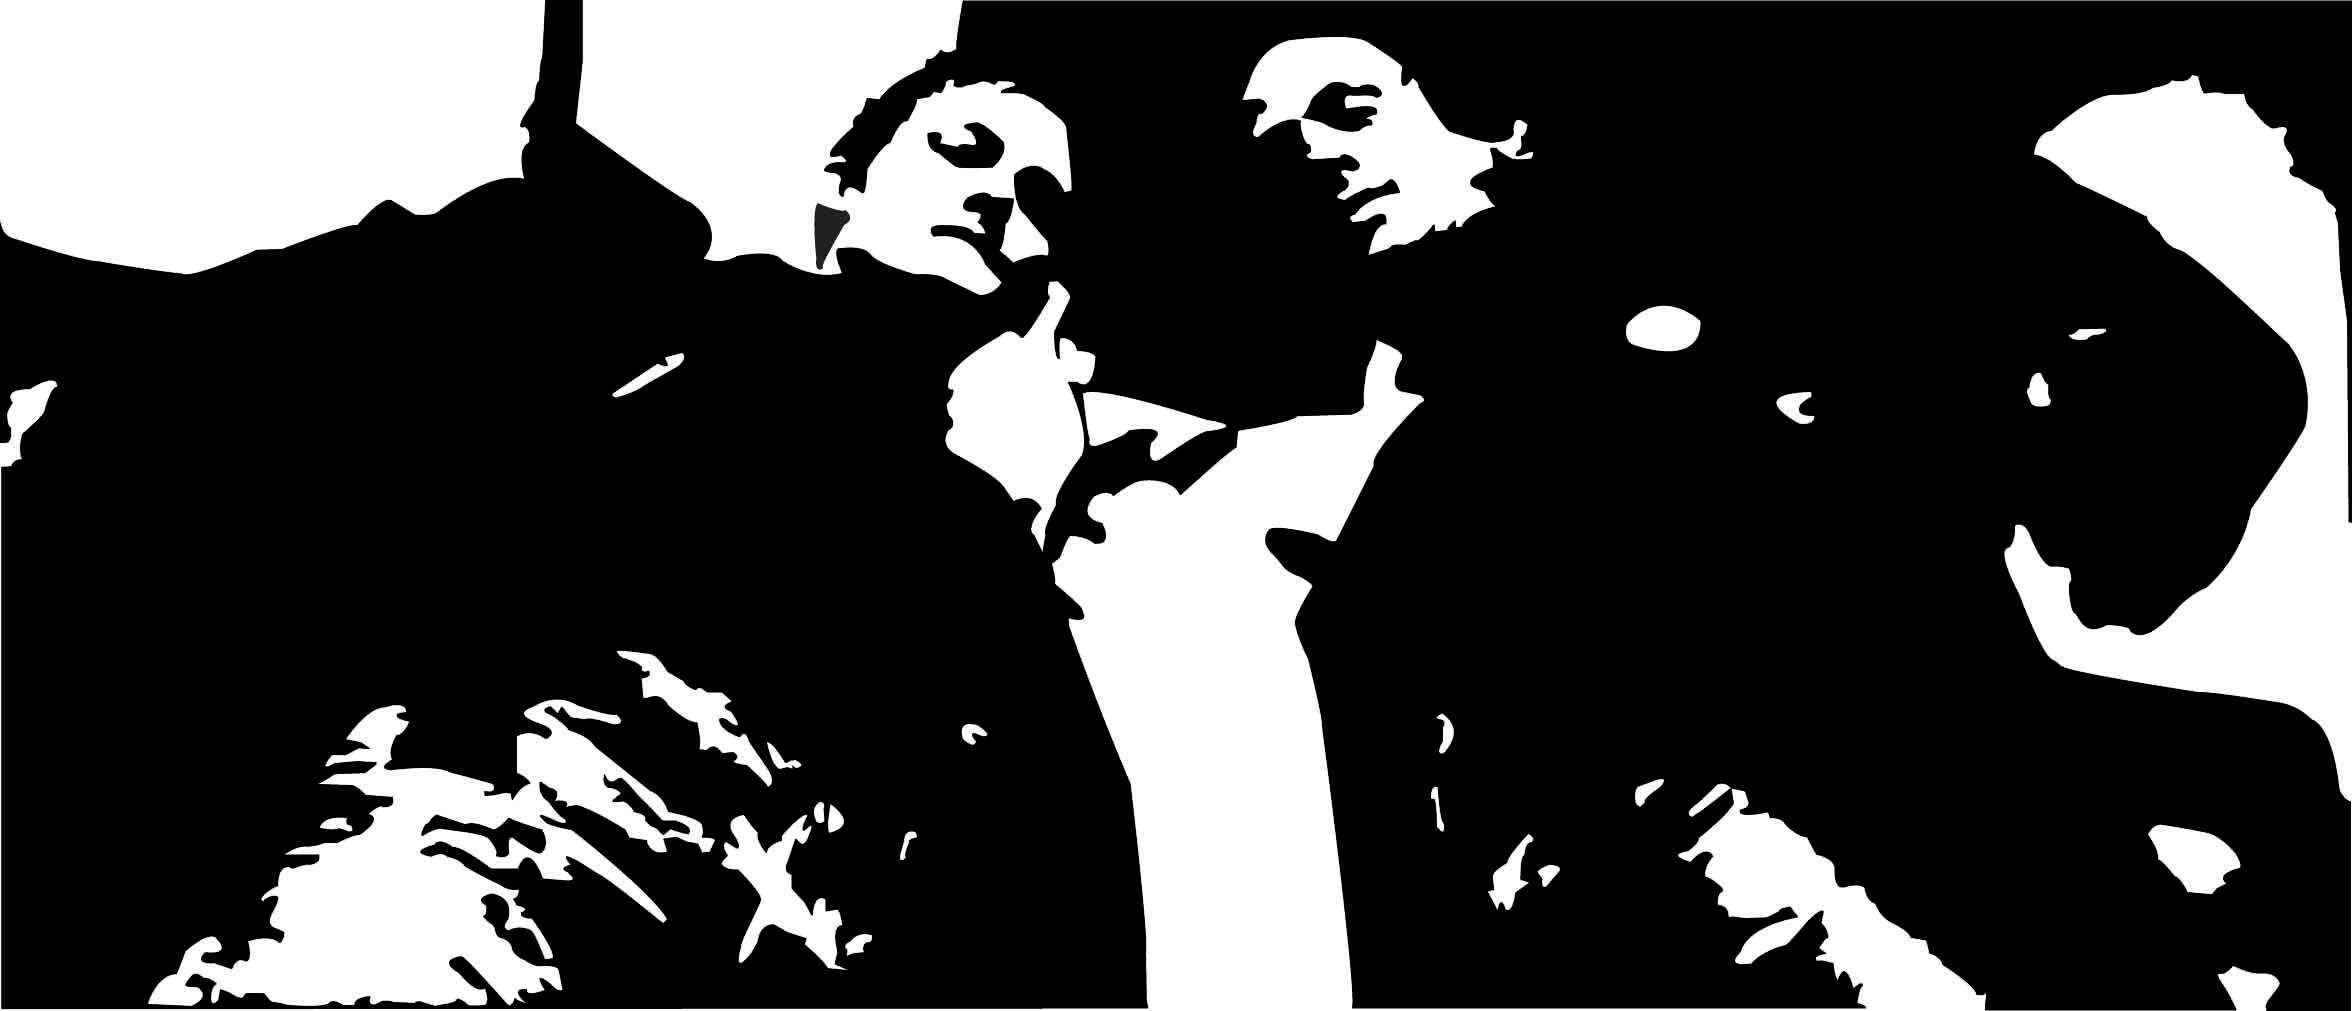 The Boondock Saints By Shinobiinthemist